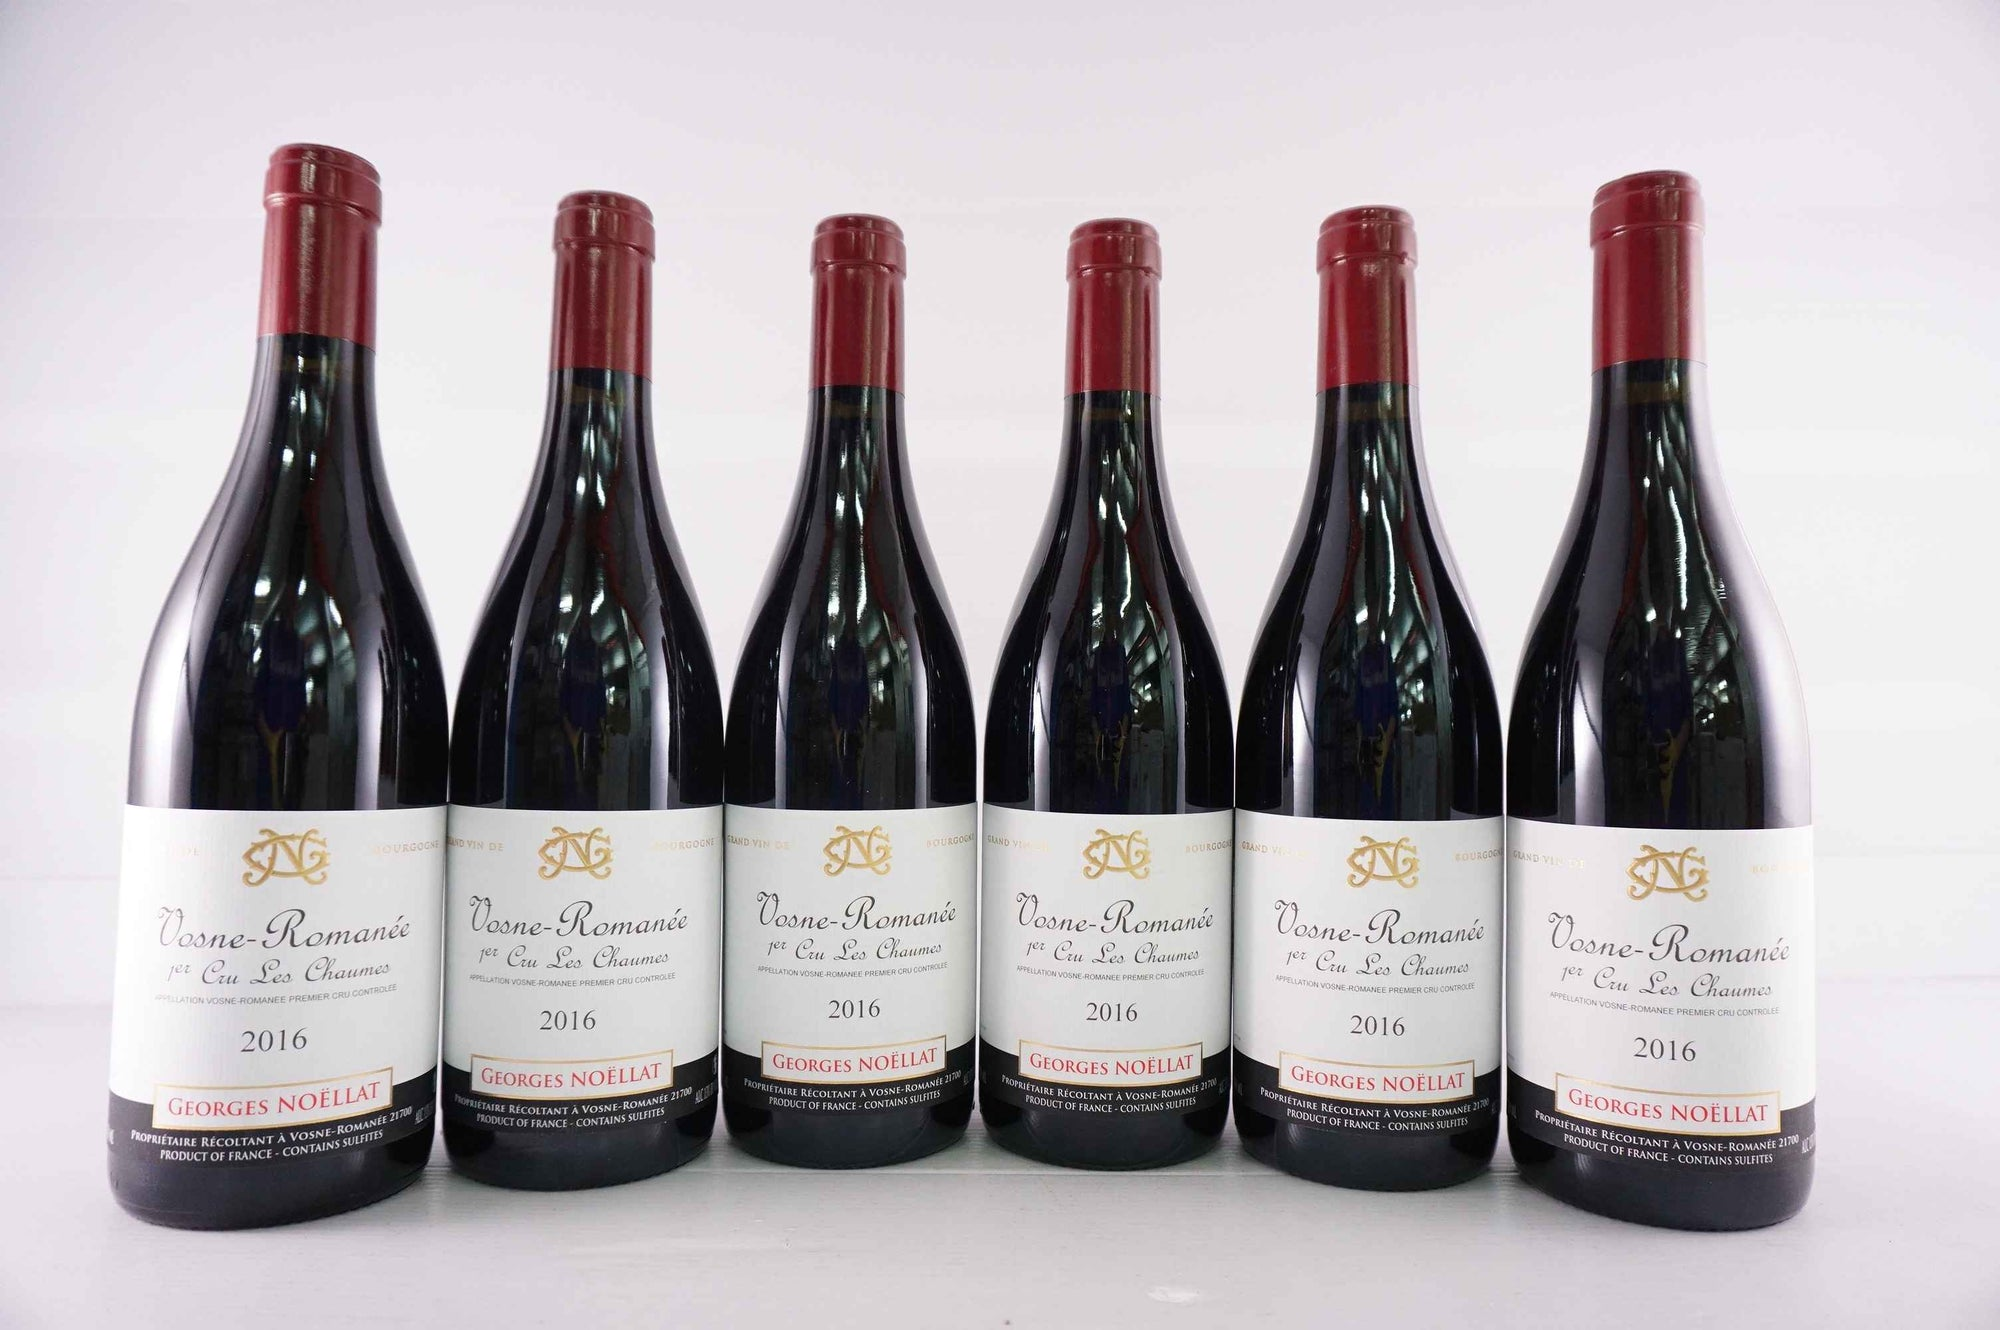 Georges Noellat Vosne Romanee Les Chaumes 1er Cru 2016